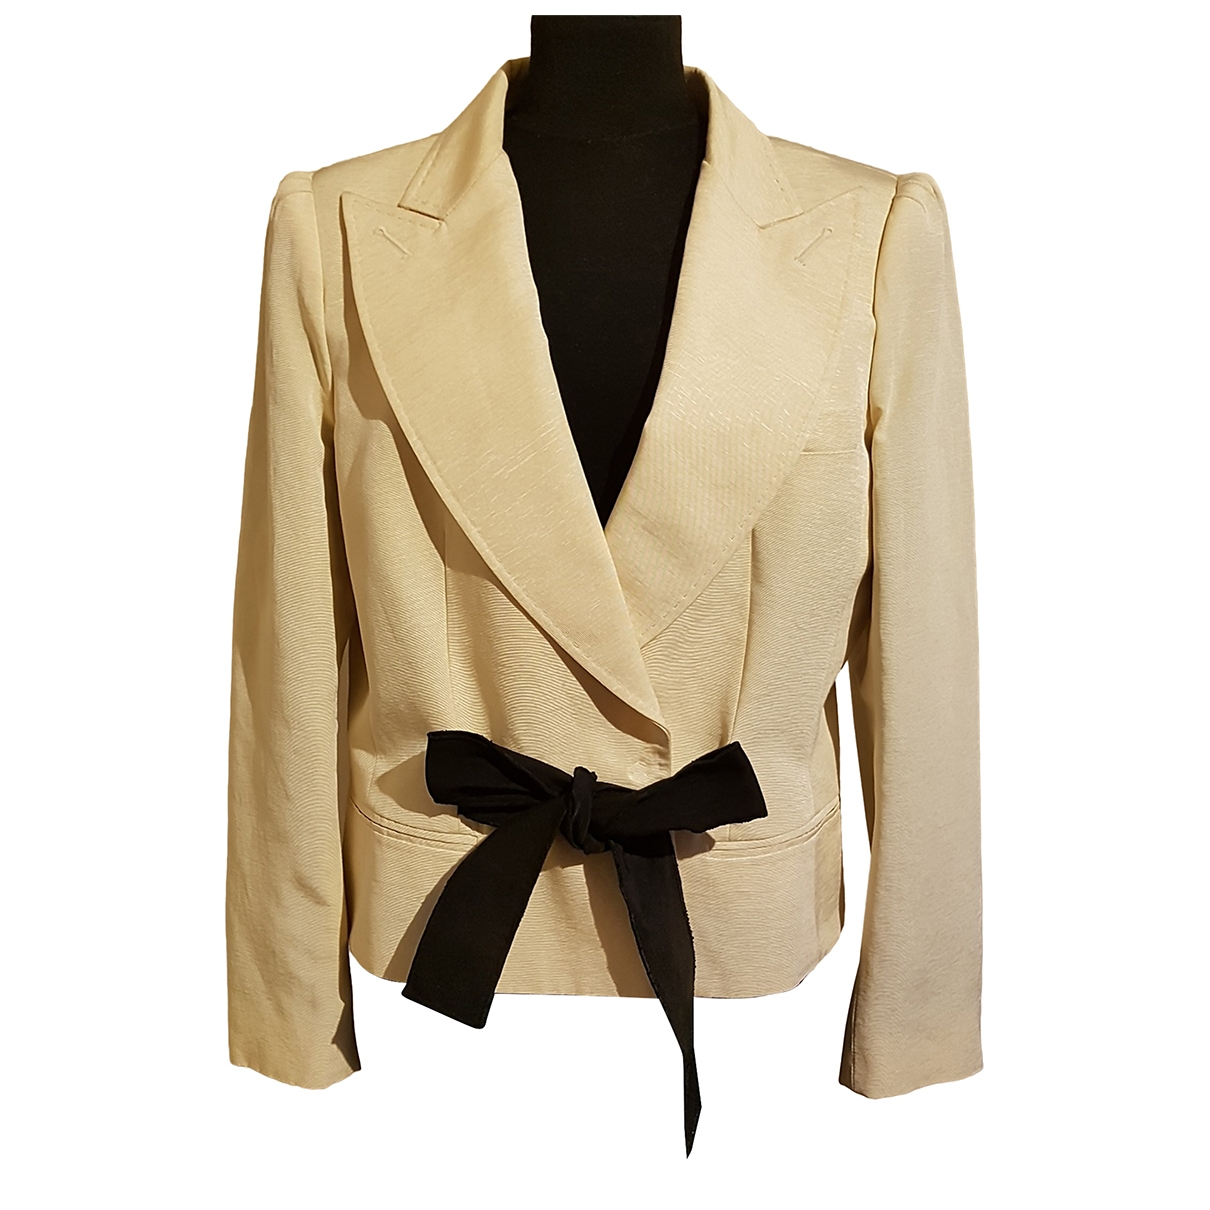 D&g \N Beige Cotton jacket for Women 42 FR